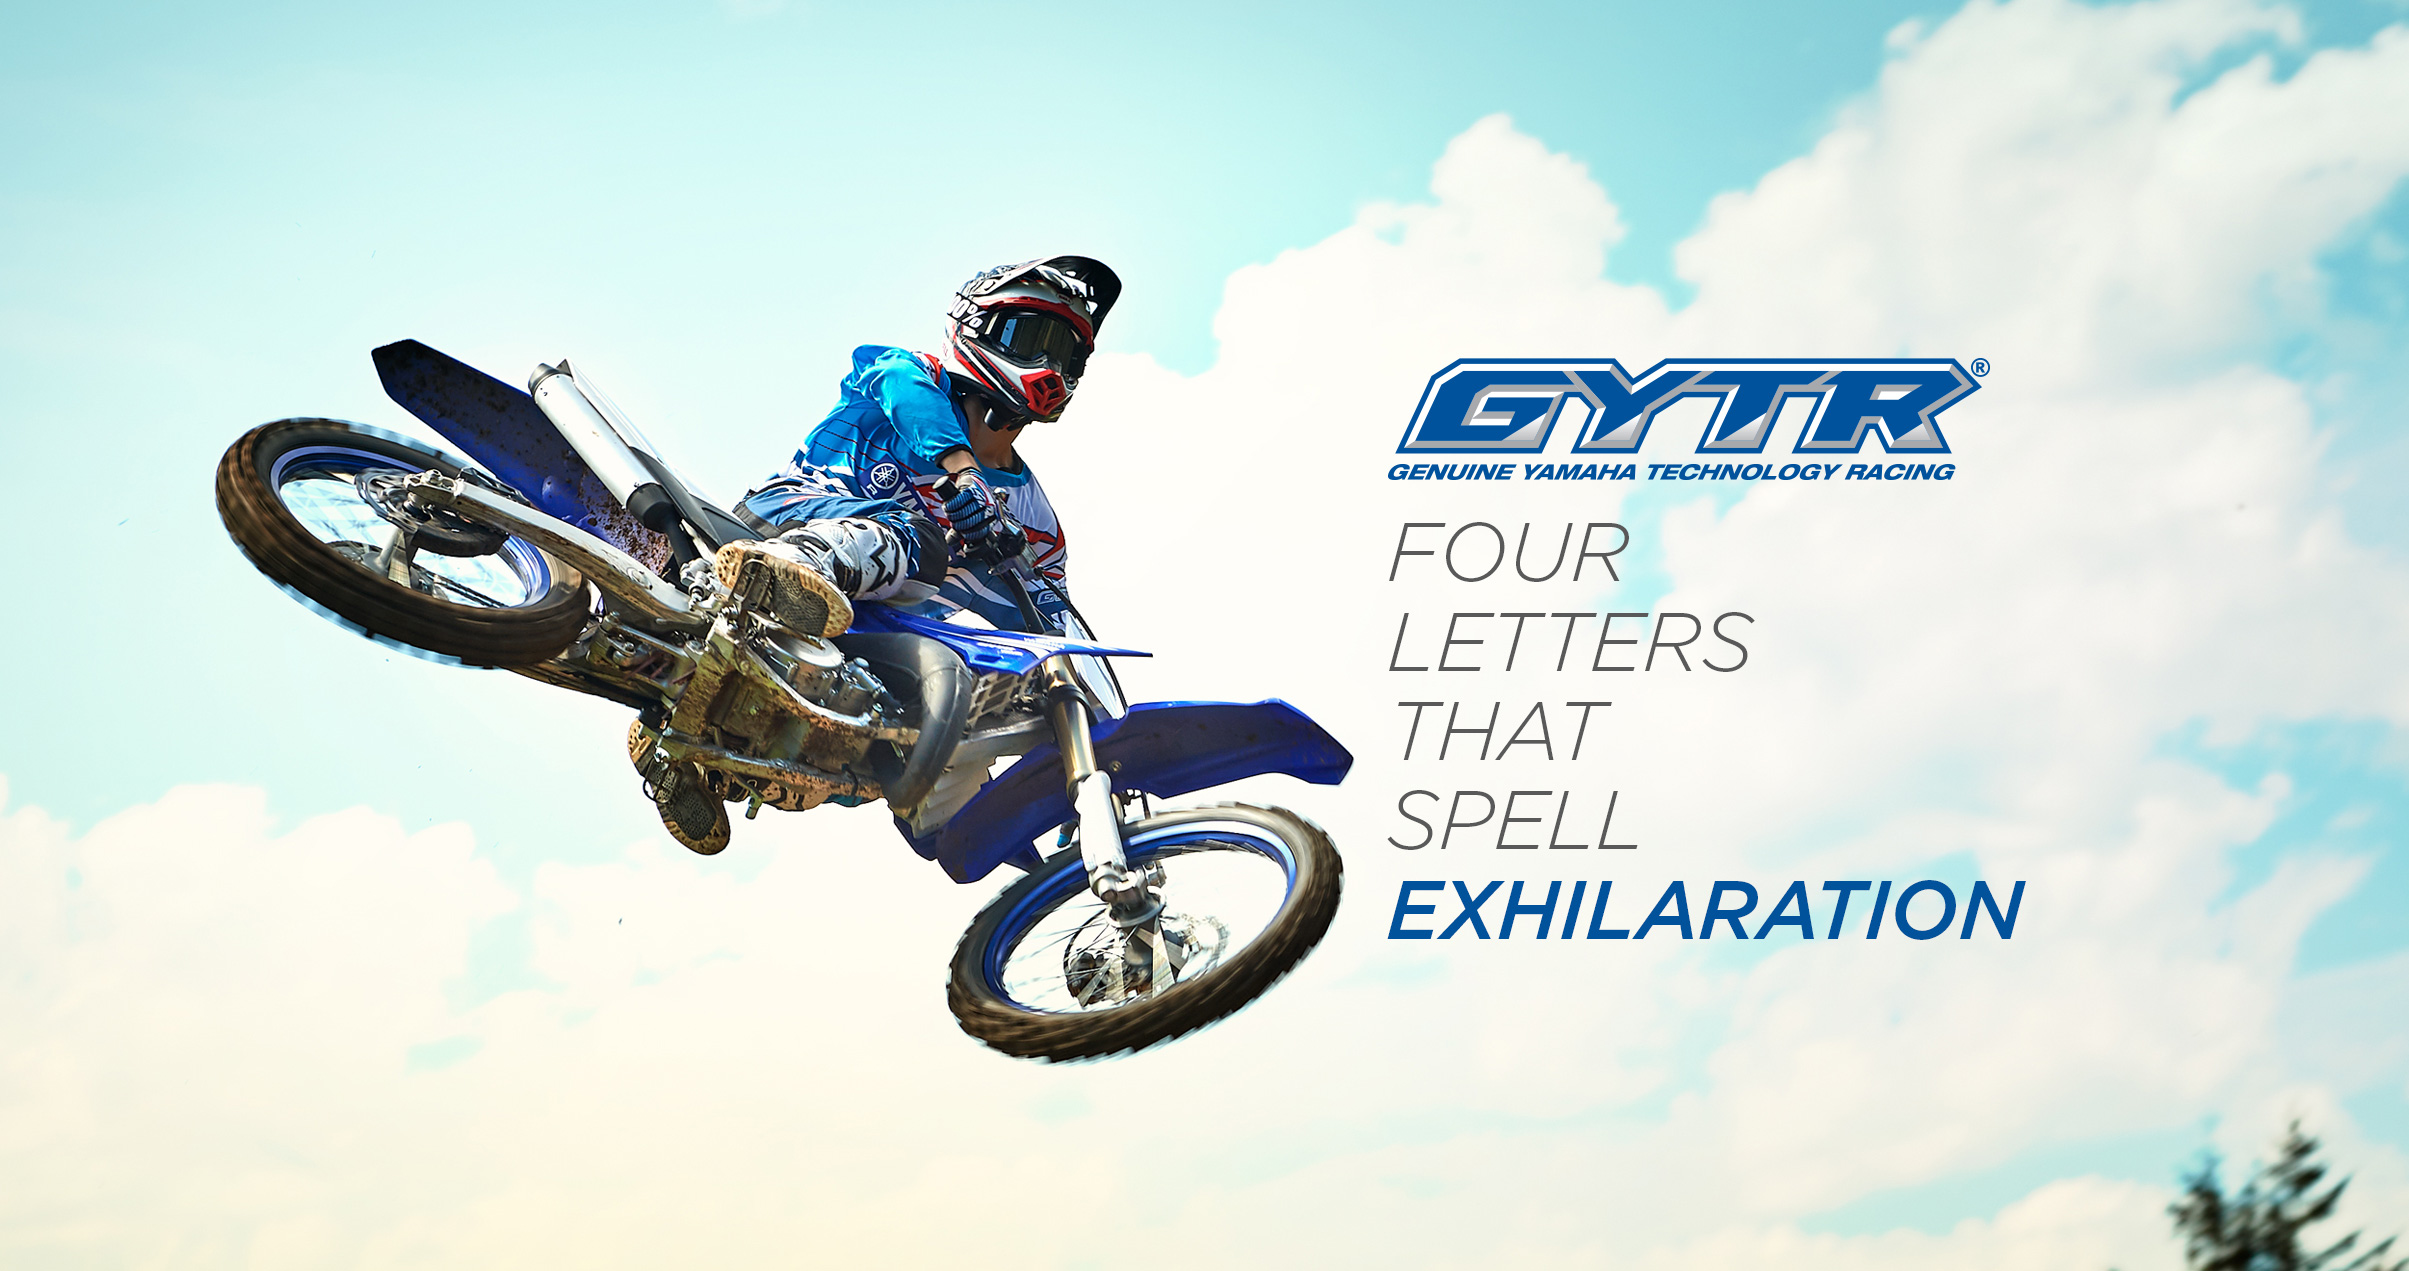 Genuine Yamaha Technology Racing (GYTR) Performance Products